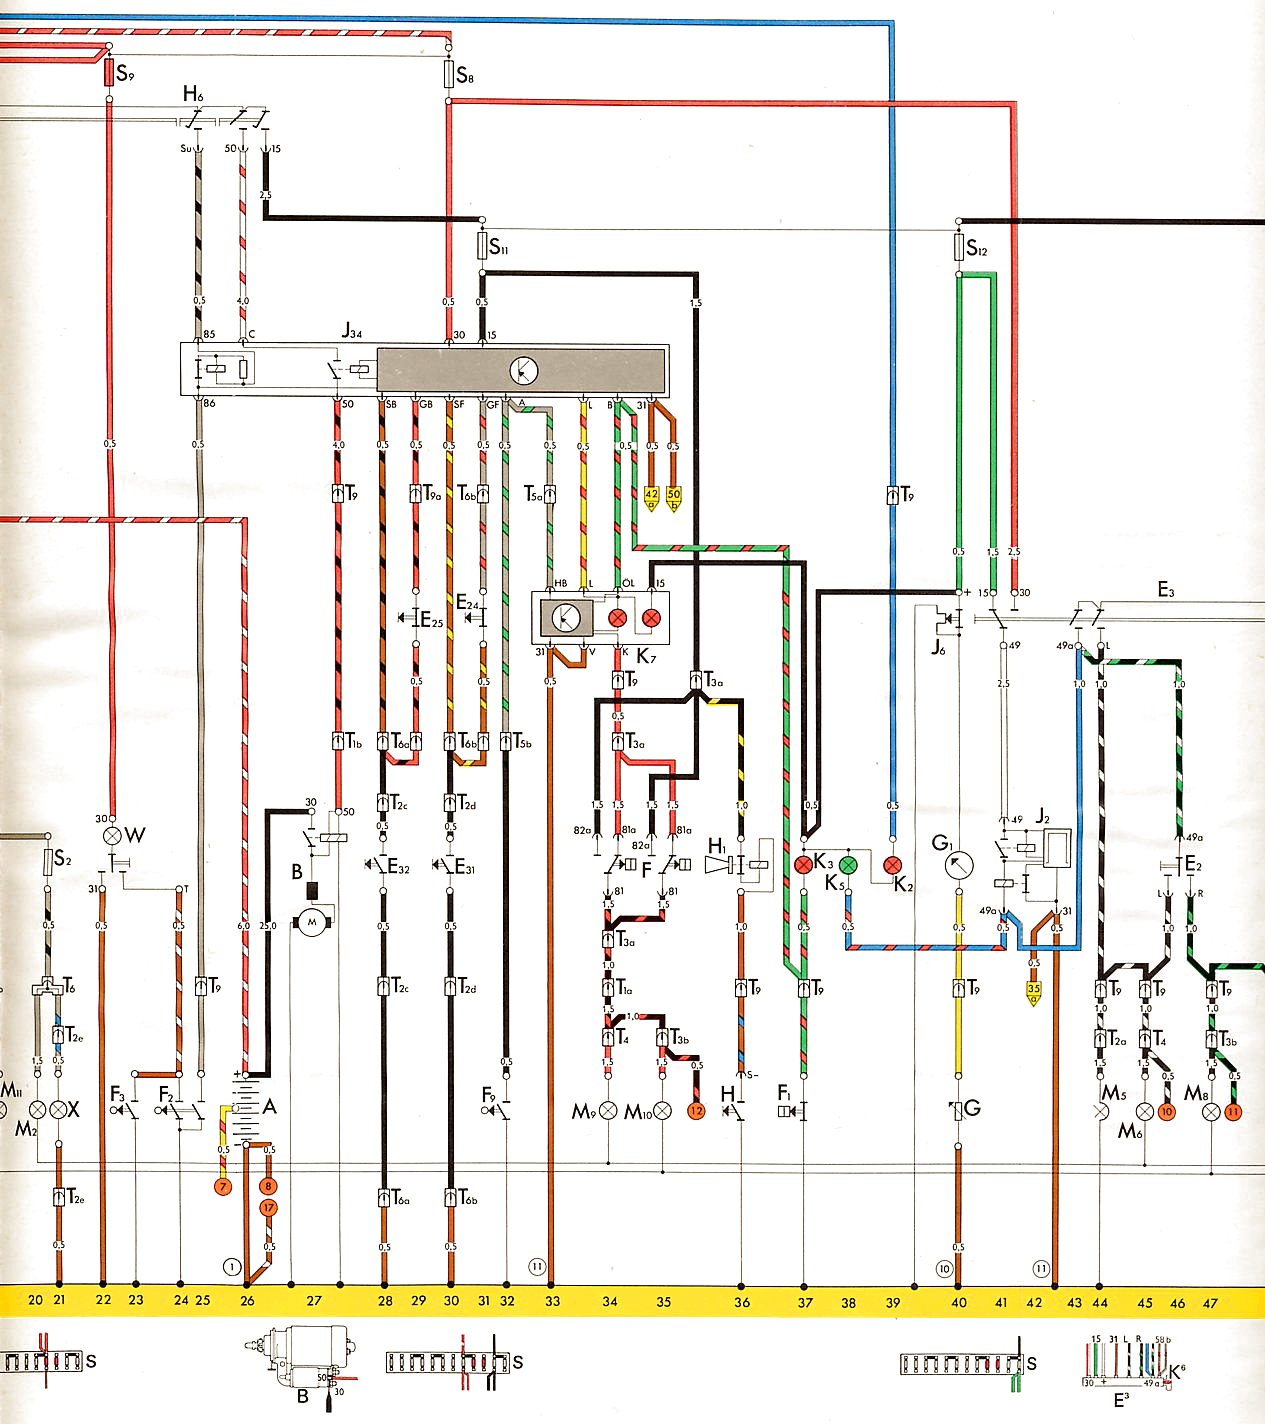 1973 super beetle wiring diagram vauxhall astra convertible vw update additionally 1972